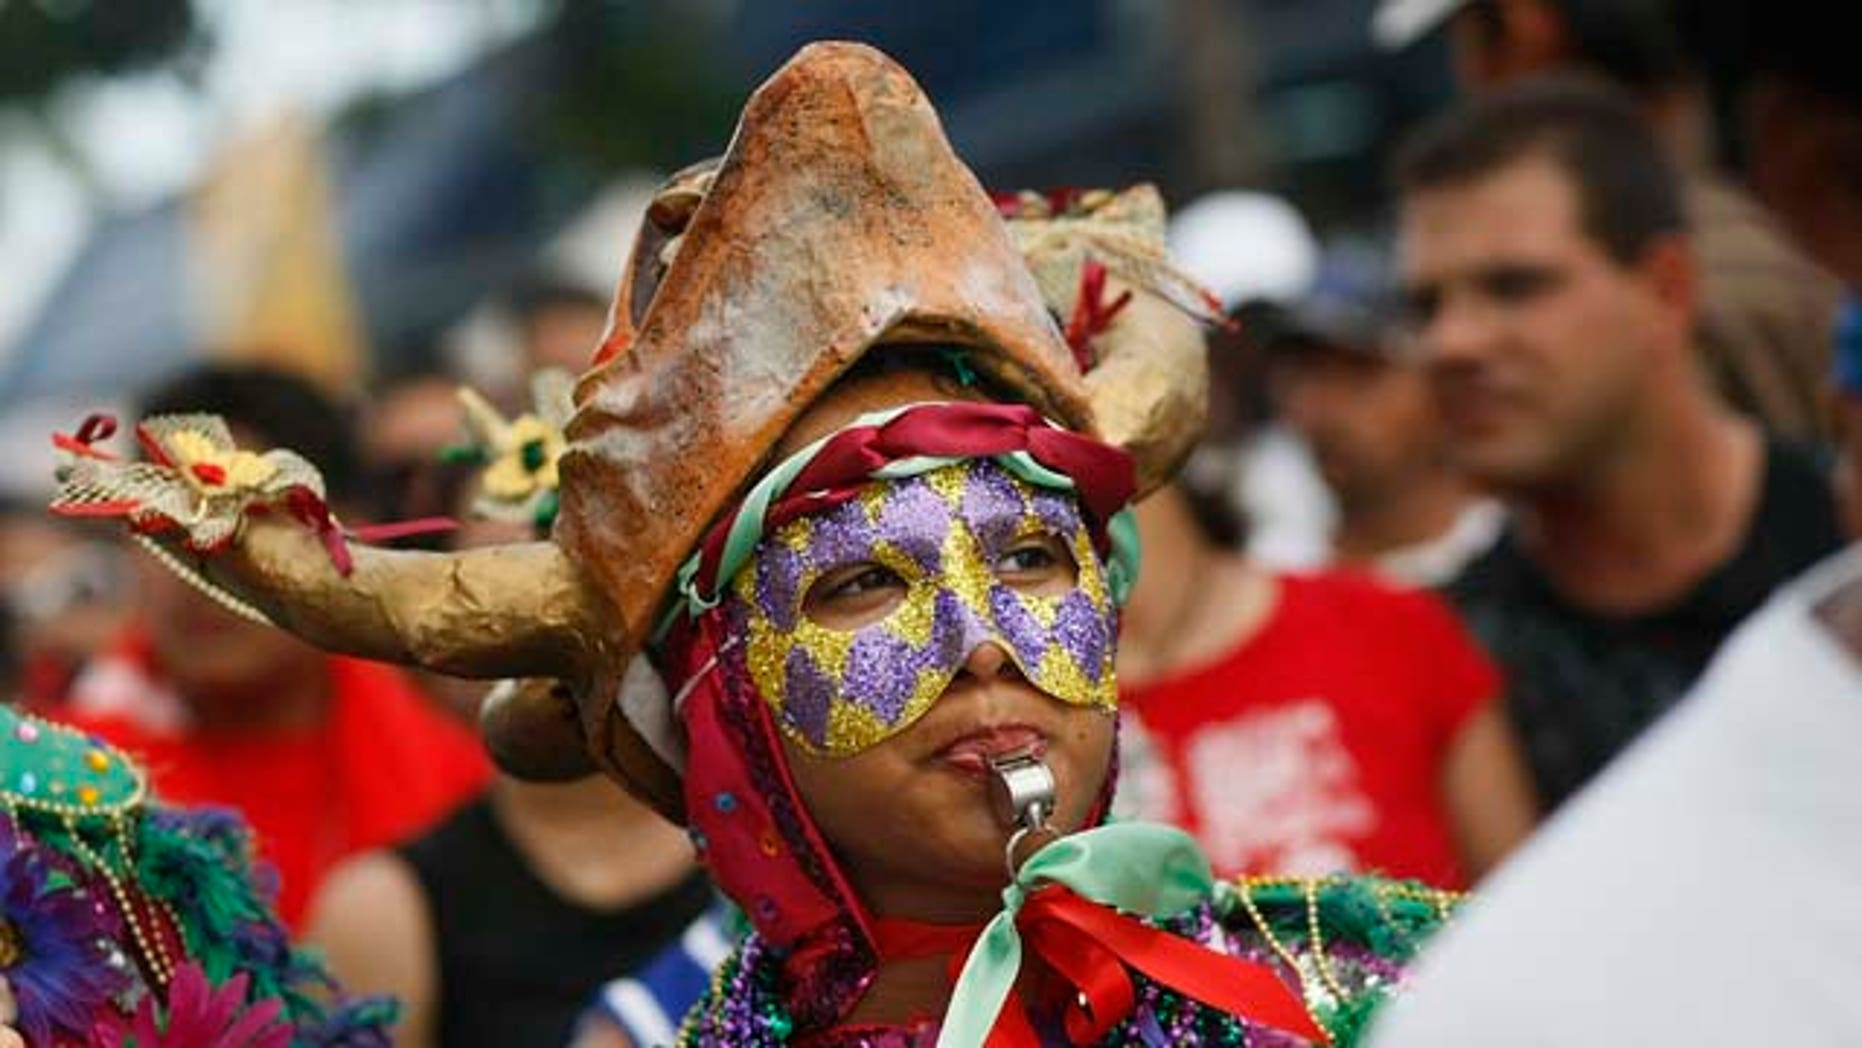 March 16, 2008:  Revelers enjoy themselves as they walk along the street during the annual Calle Ocho celebration in the Little Havana neighborhood of Miami, Fla. The event is billed as the largest Hispanic festival in the nation.